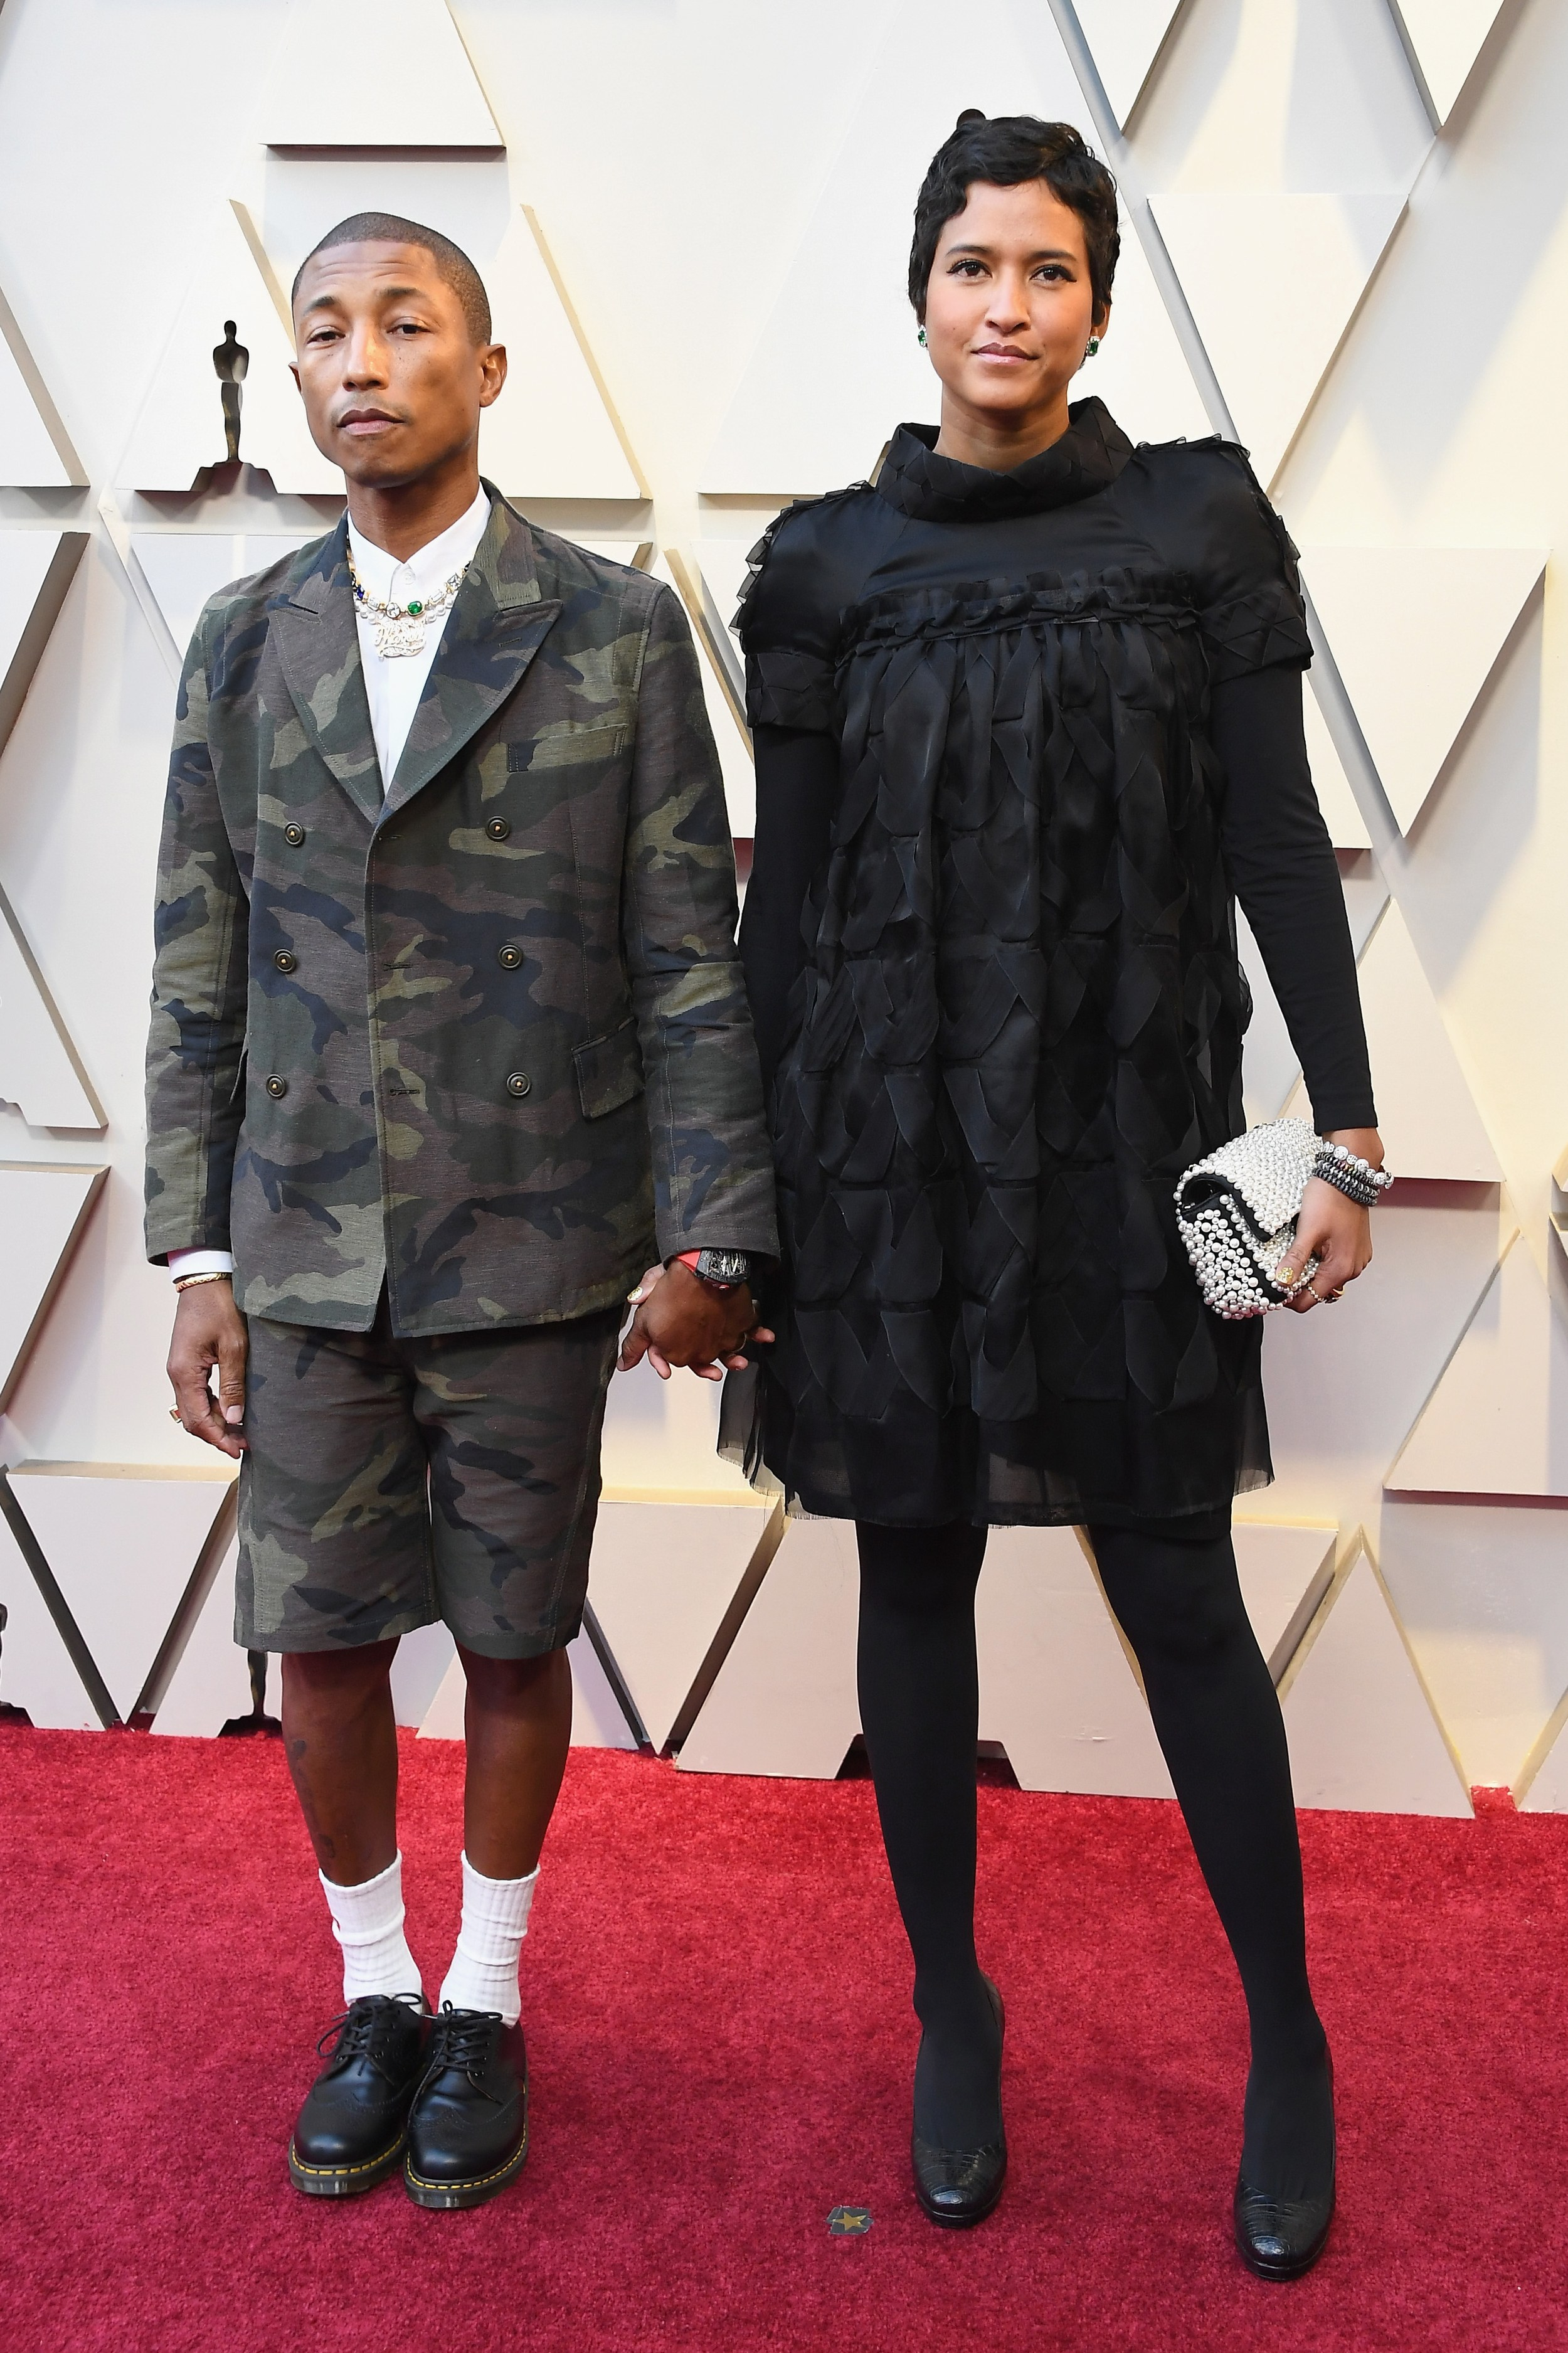 91st OSCARS RED CARPET 2019 PHARRELL WILLIAMS AND WIFE.jpg